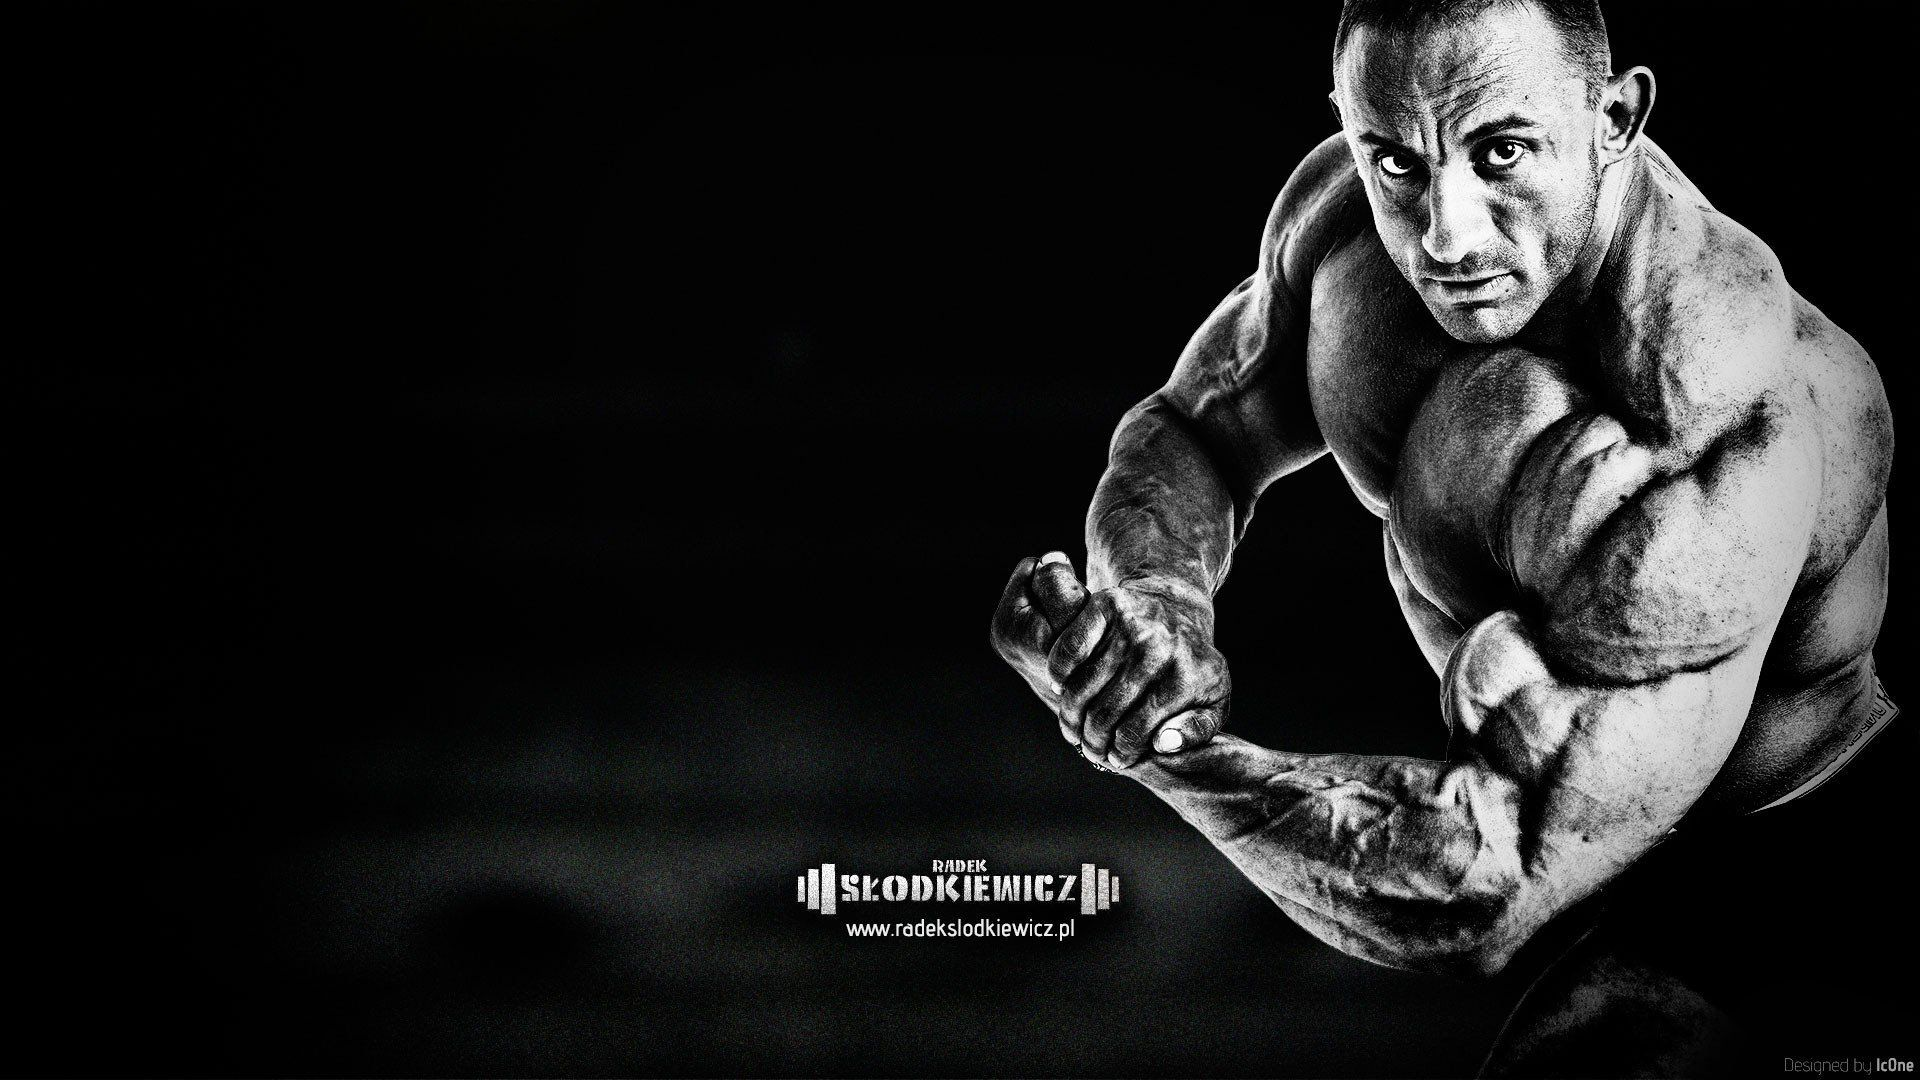 Pin On Strongmen Male Enhancement Gym images hd wallpaper download